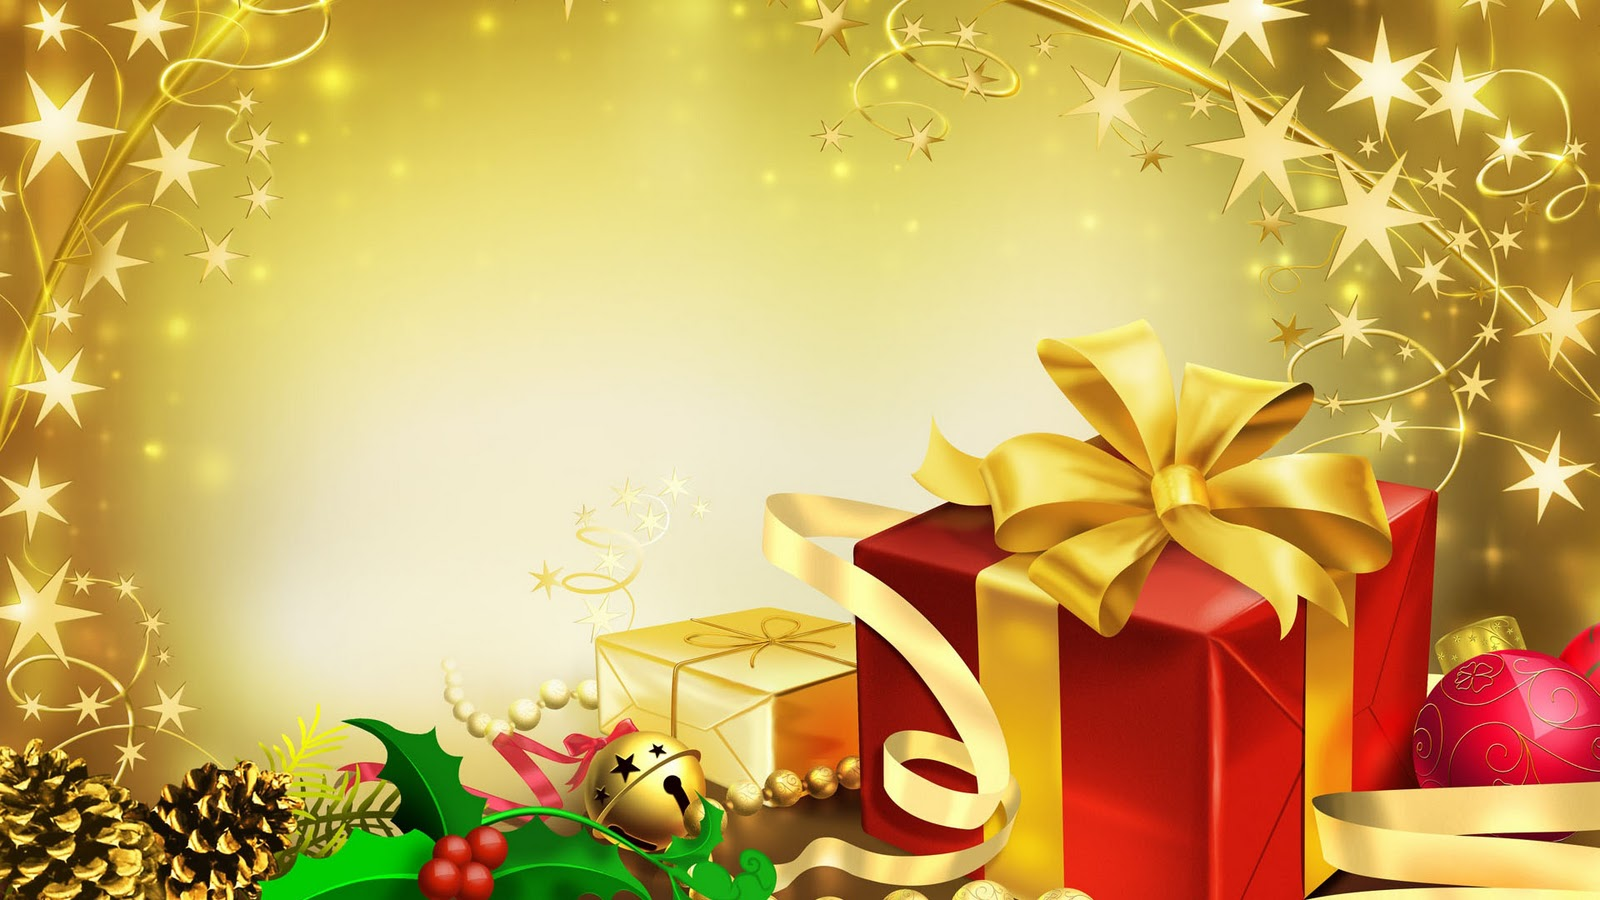 free christmas desktop wallpaper backgrounds   wwwwallpapers in hd 1600x900